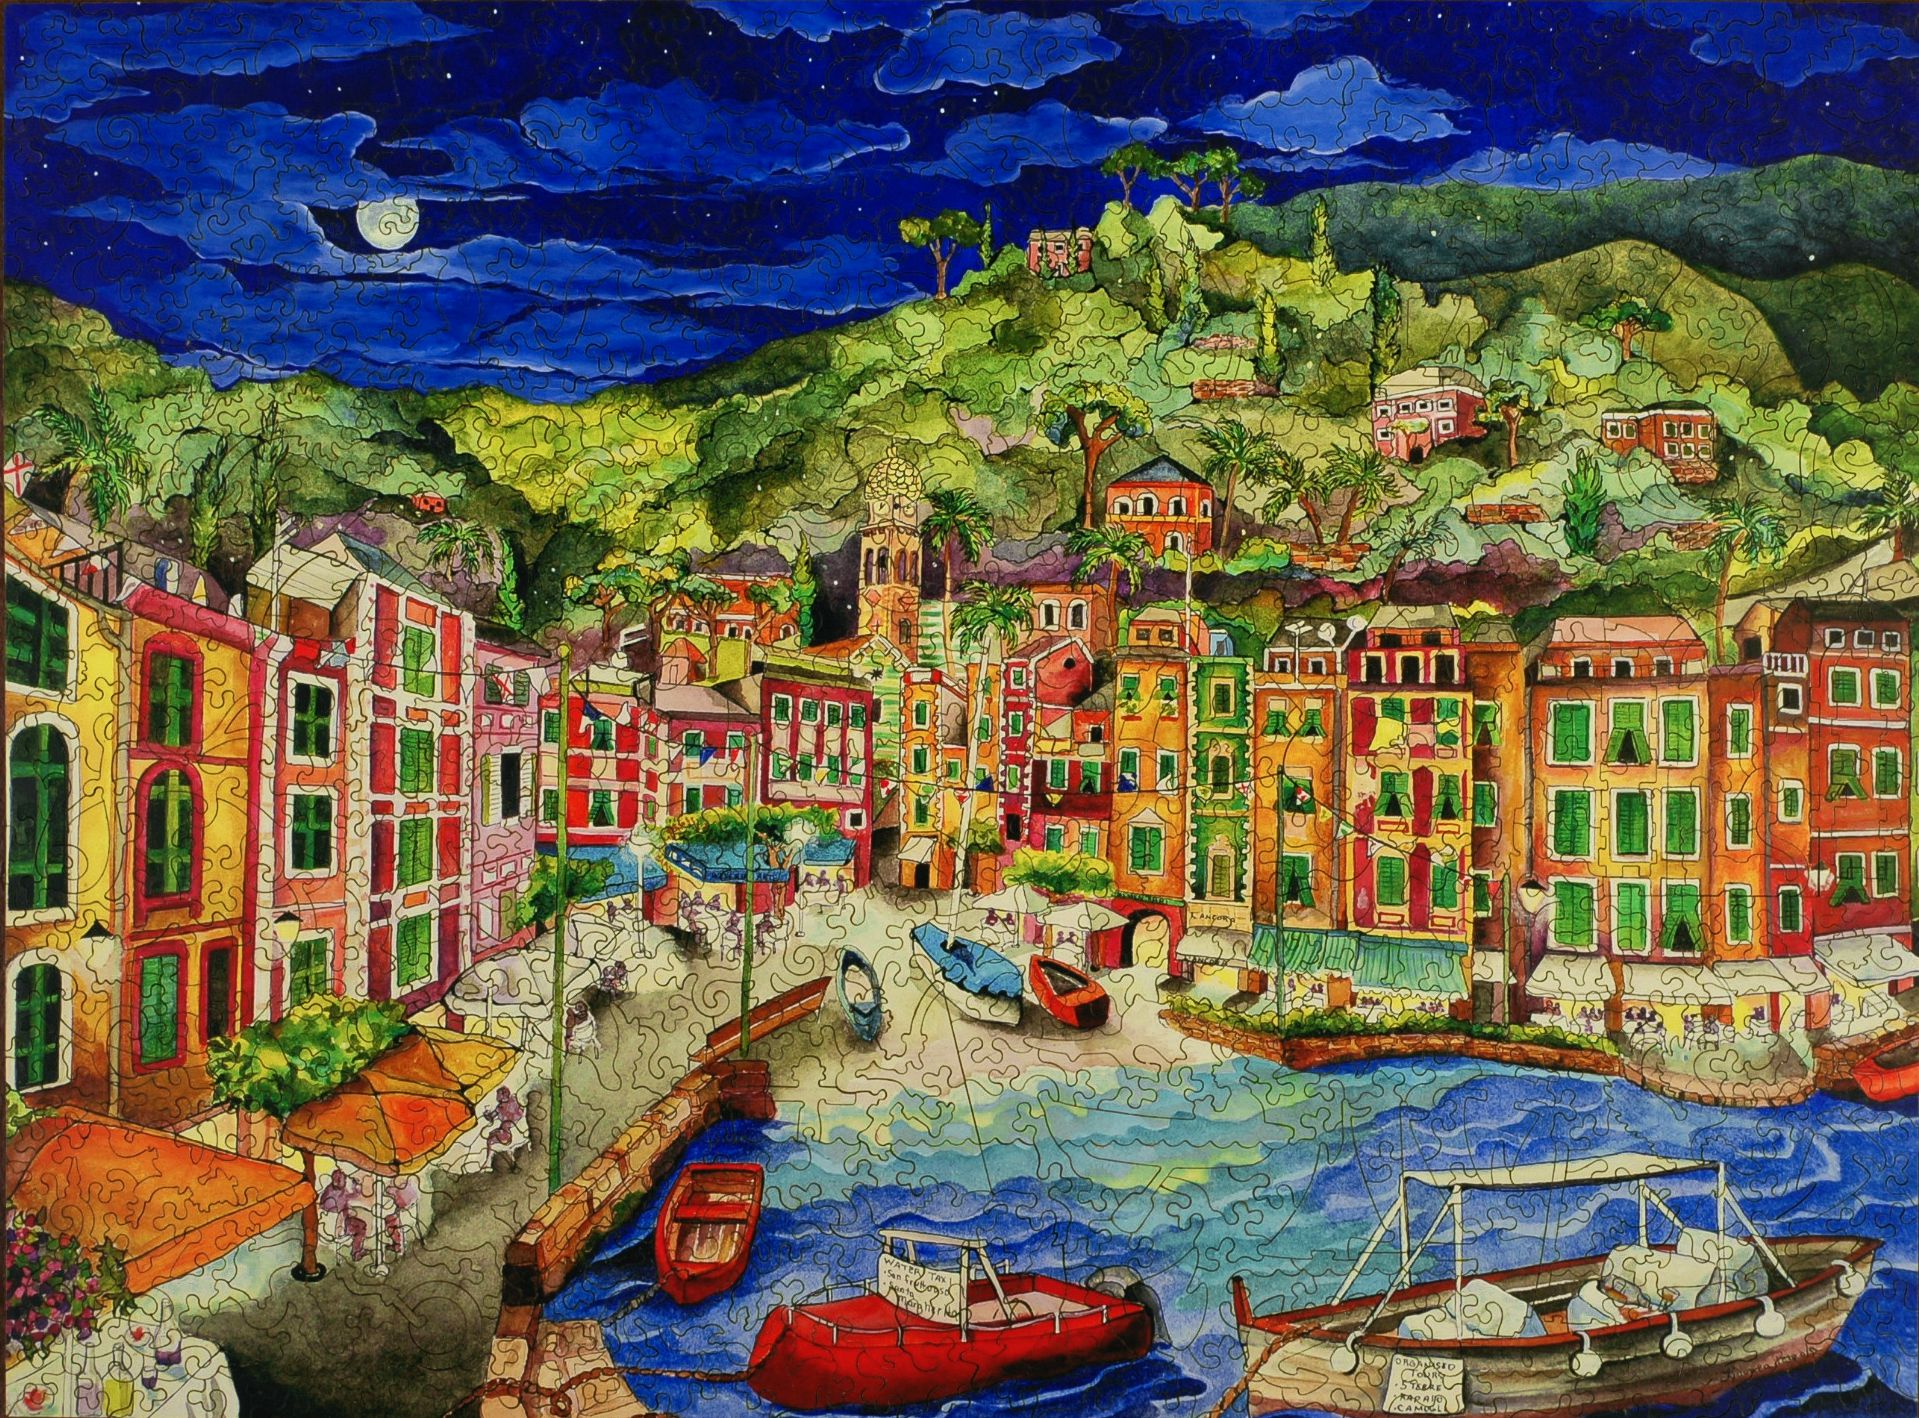 portofino italy wooden jigsaw puzzle liberty puzzles made in